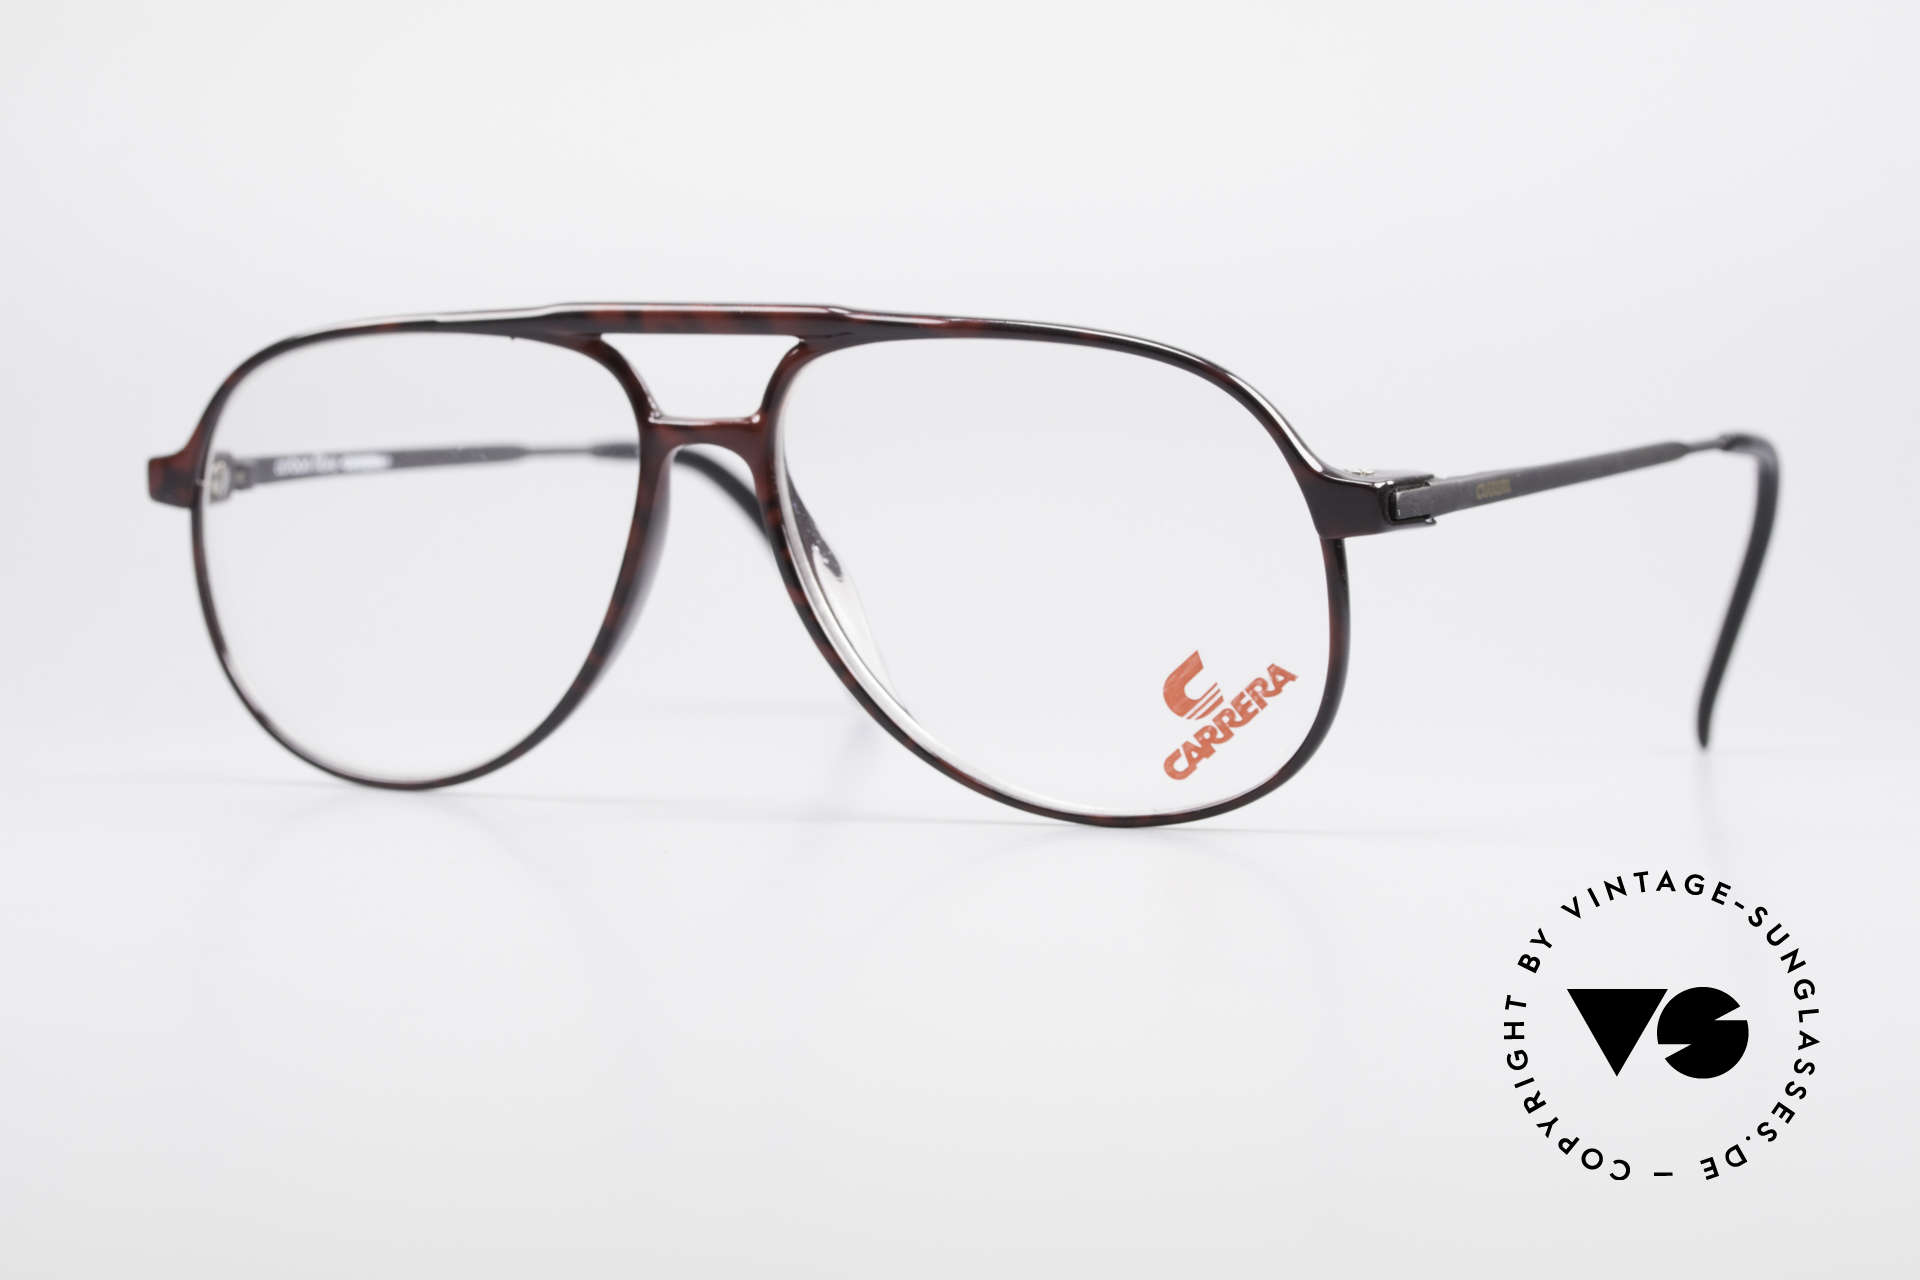 Carrera 5355 Carbon Fibre Aviator Frame, Carrera 5355 Carbon Fibre vintage 90's eyeglasses, Made for Men